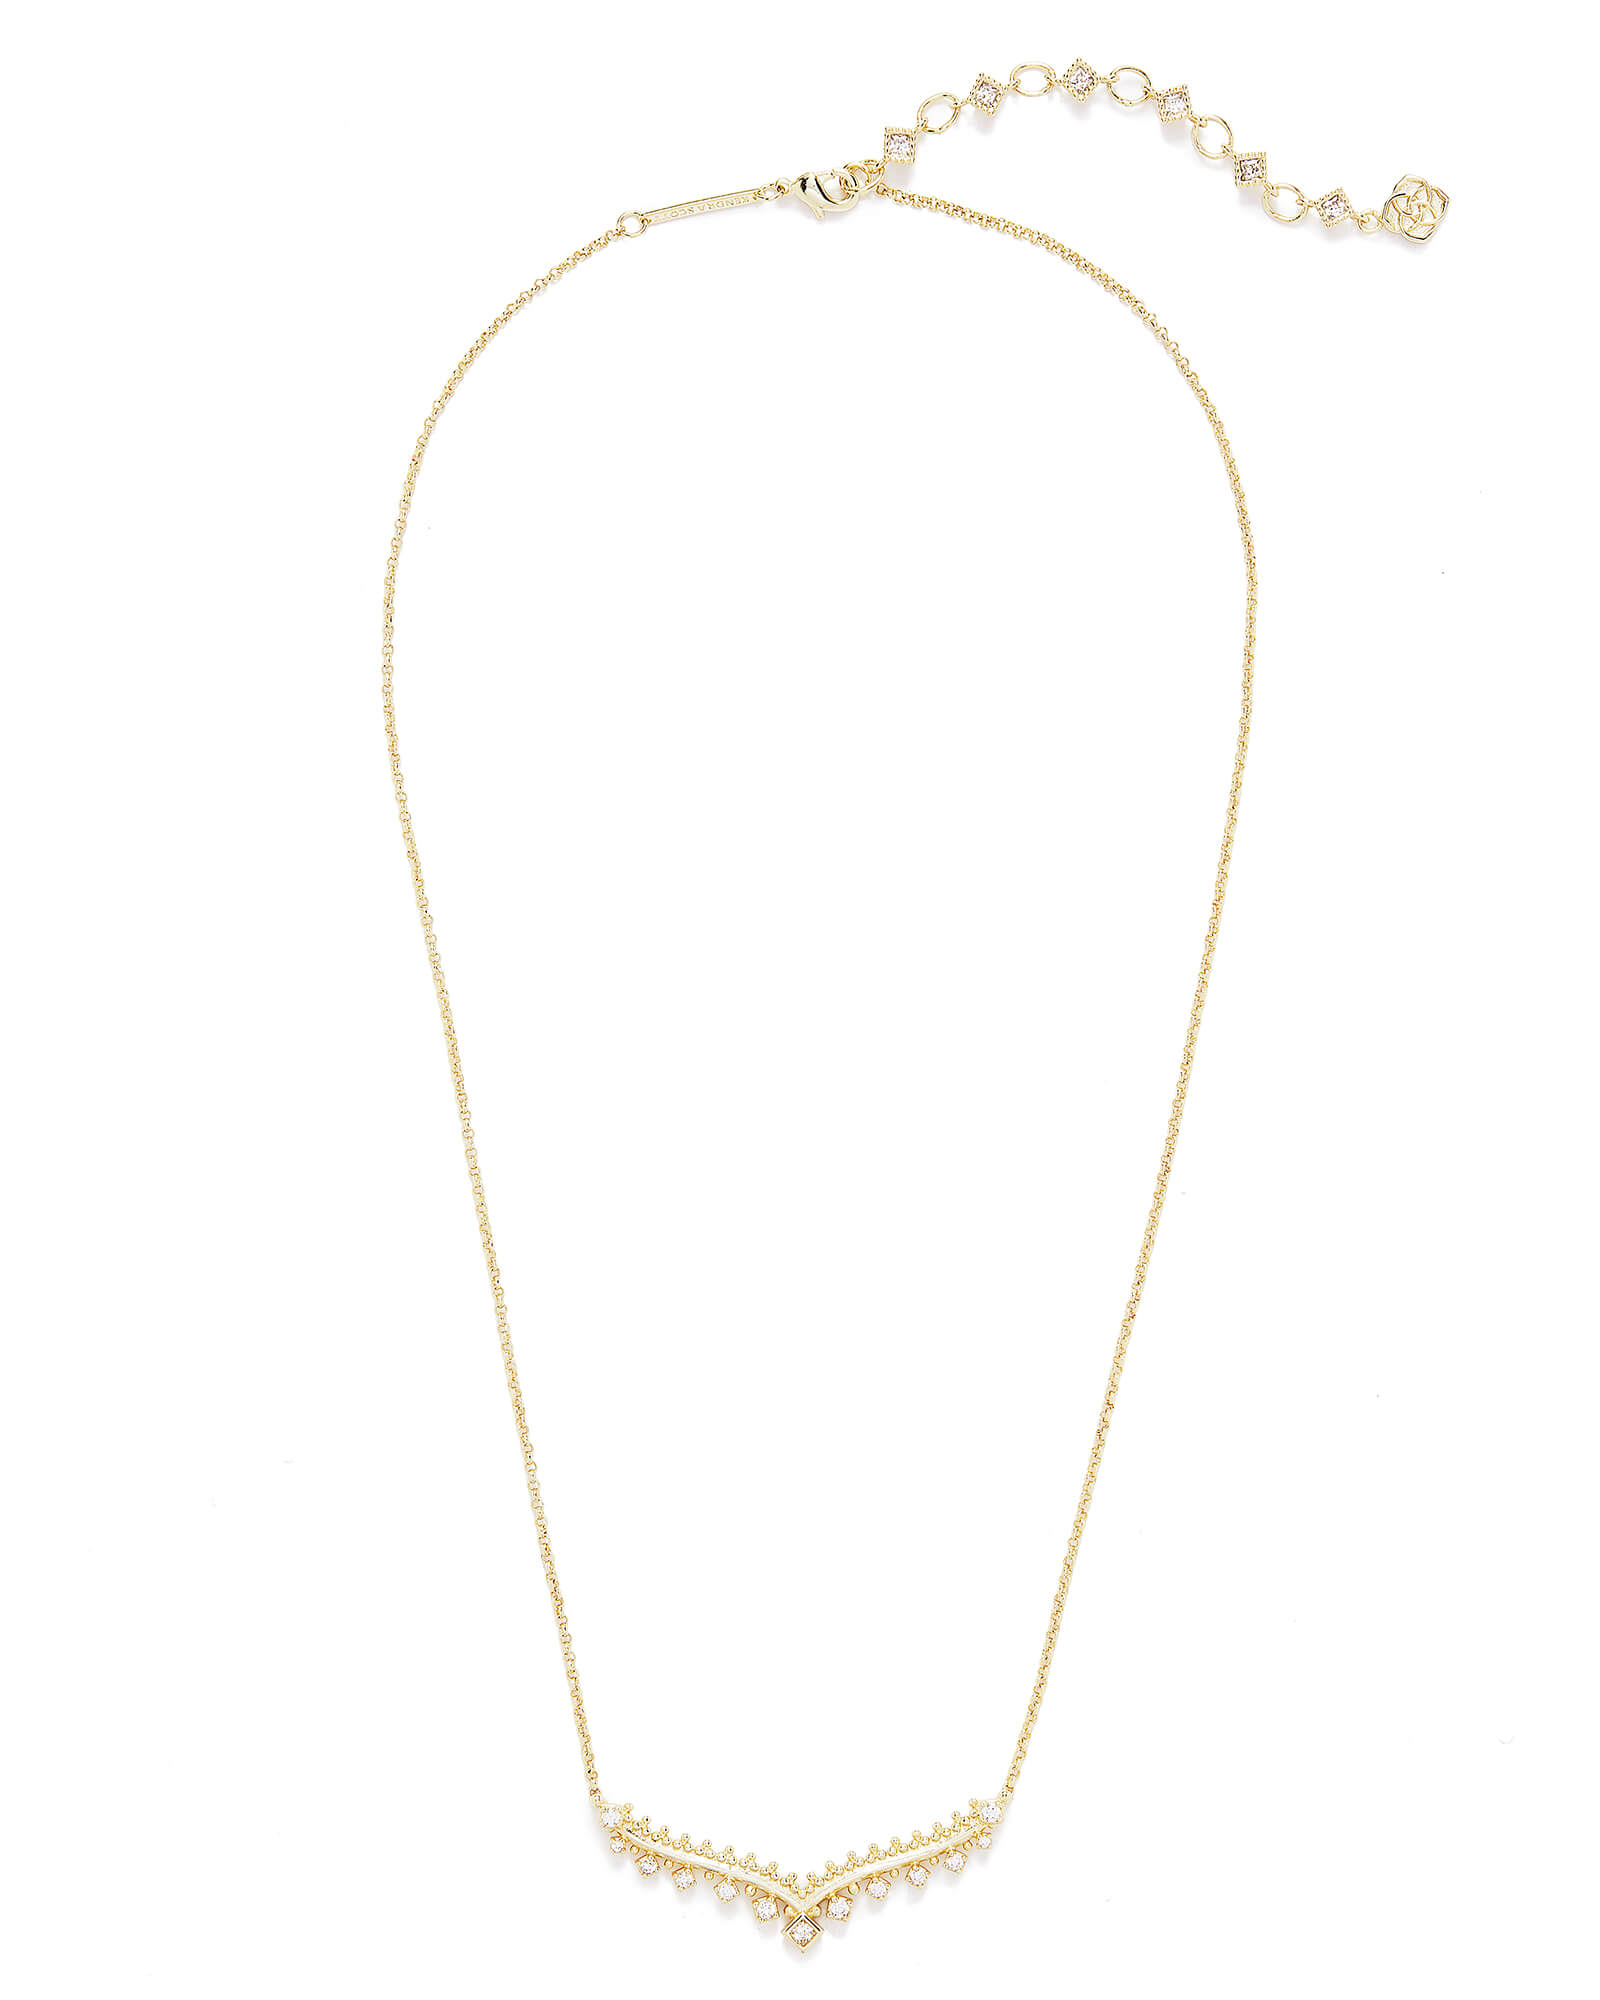 Vern Pendant Necklace in Gold